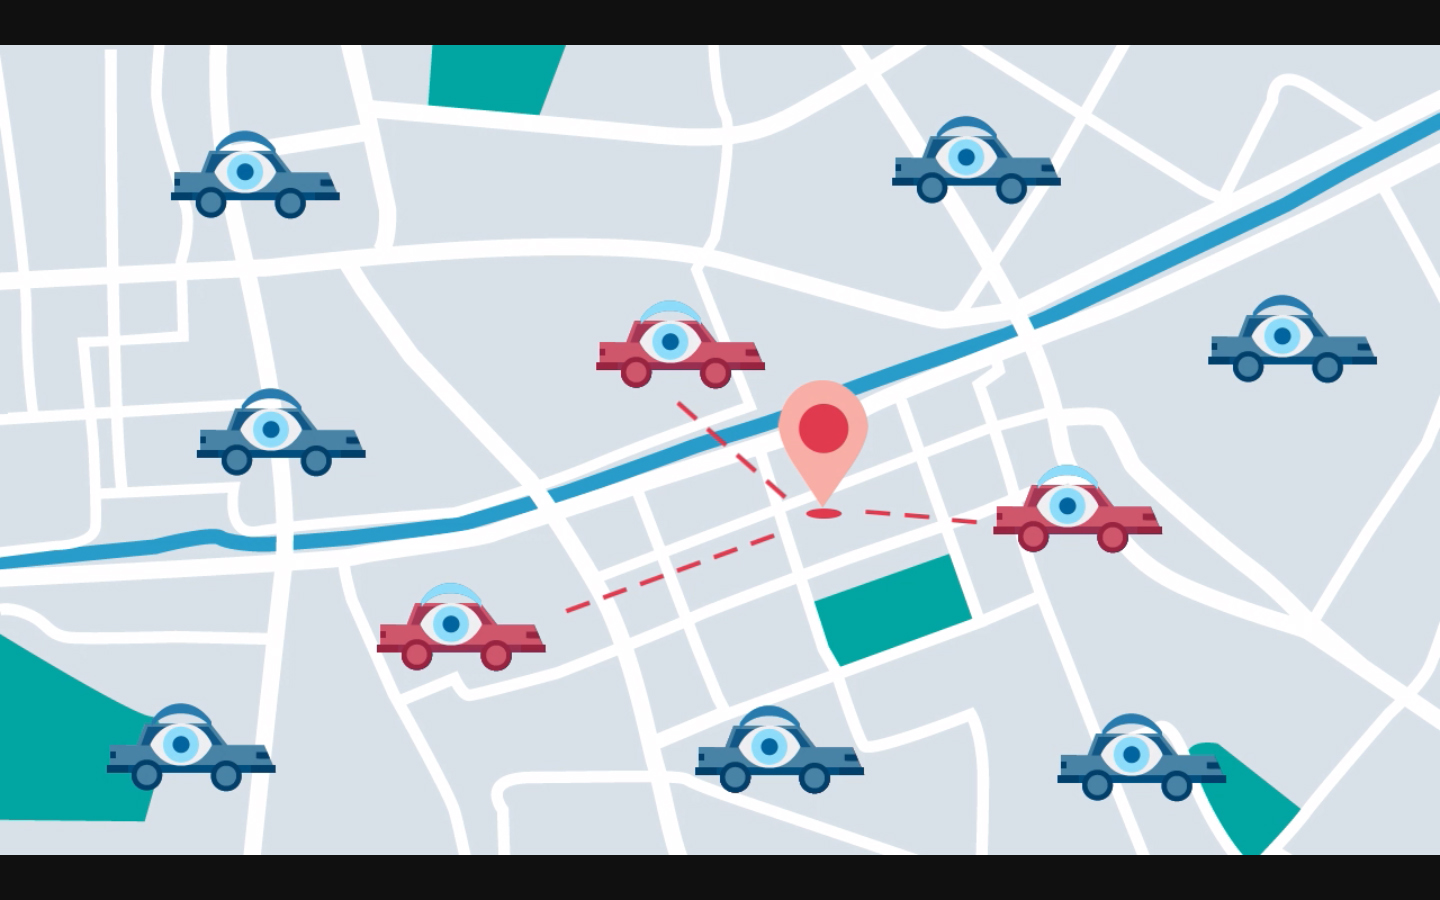 IBM envisions parked cars watching over us